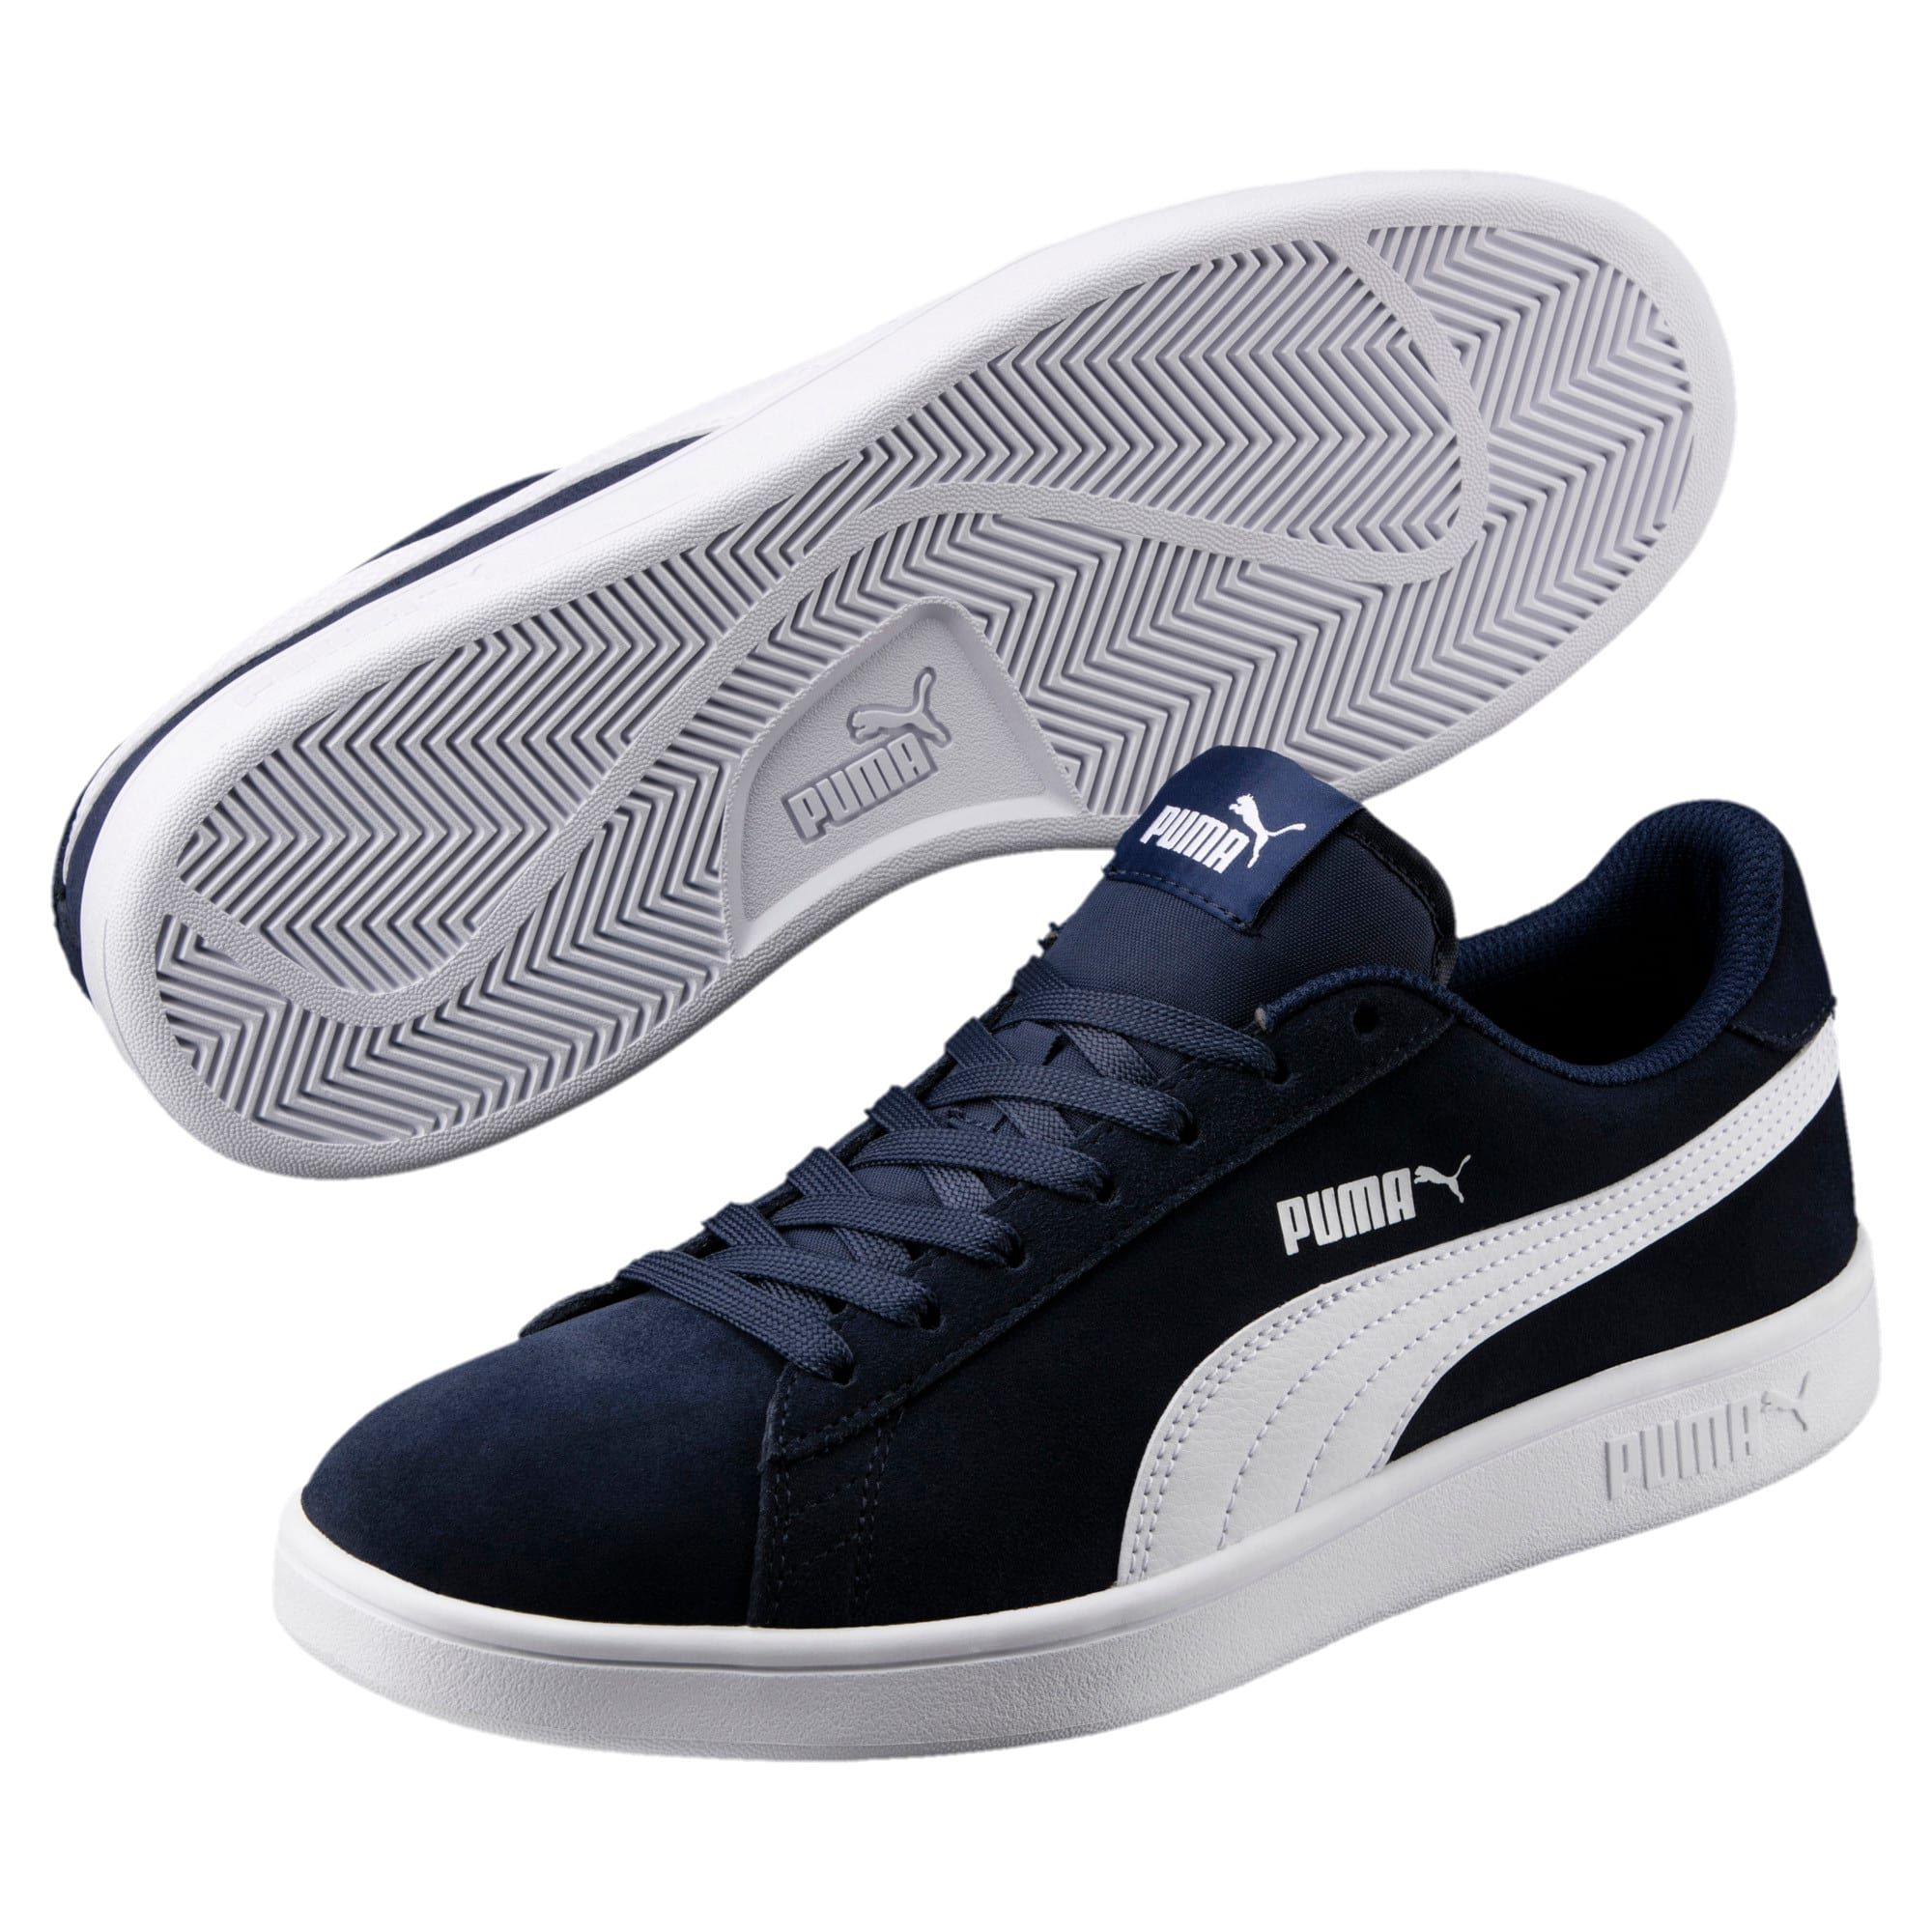 Smash v2 Trainers | White puma shoes, Blue shoes, Sneakers